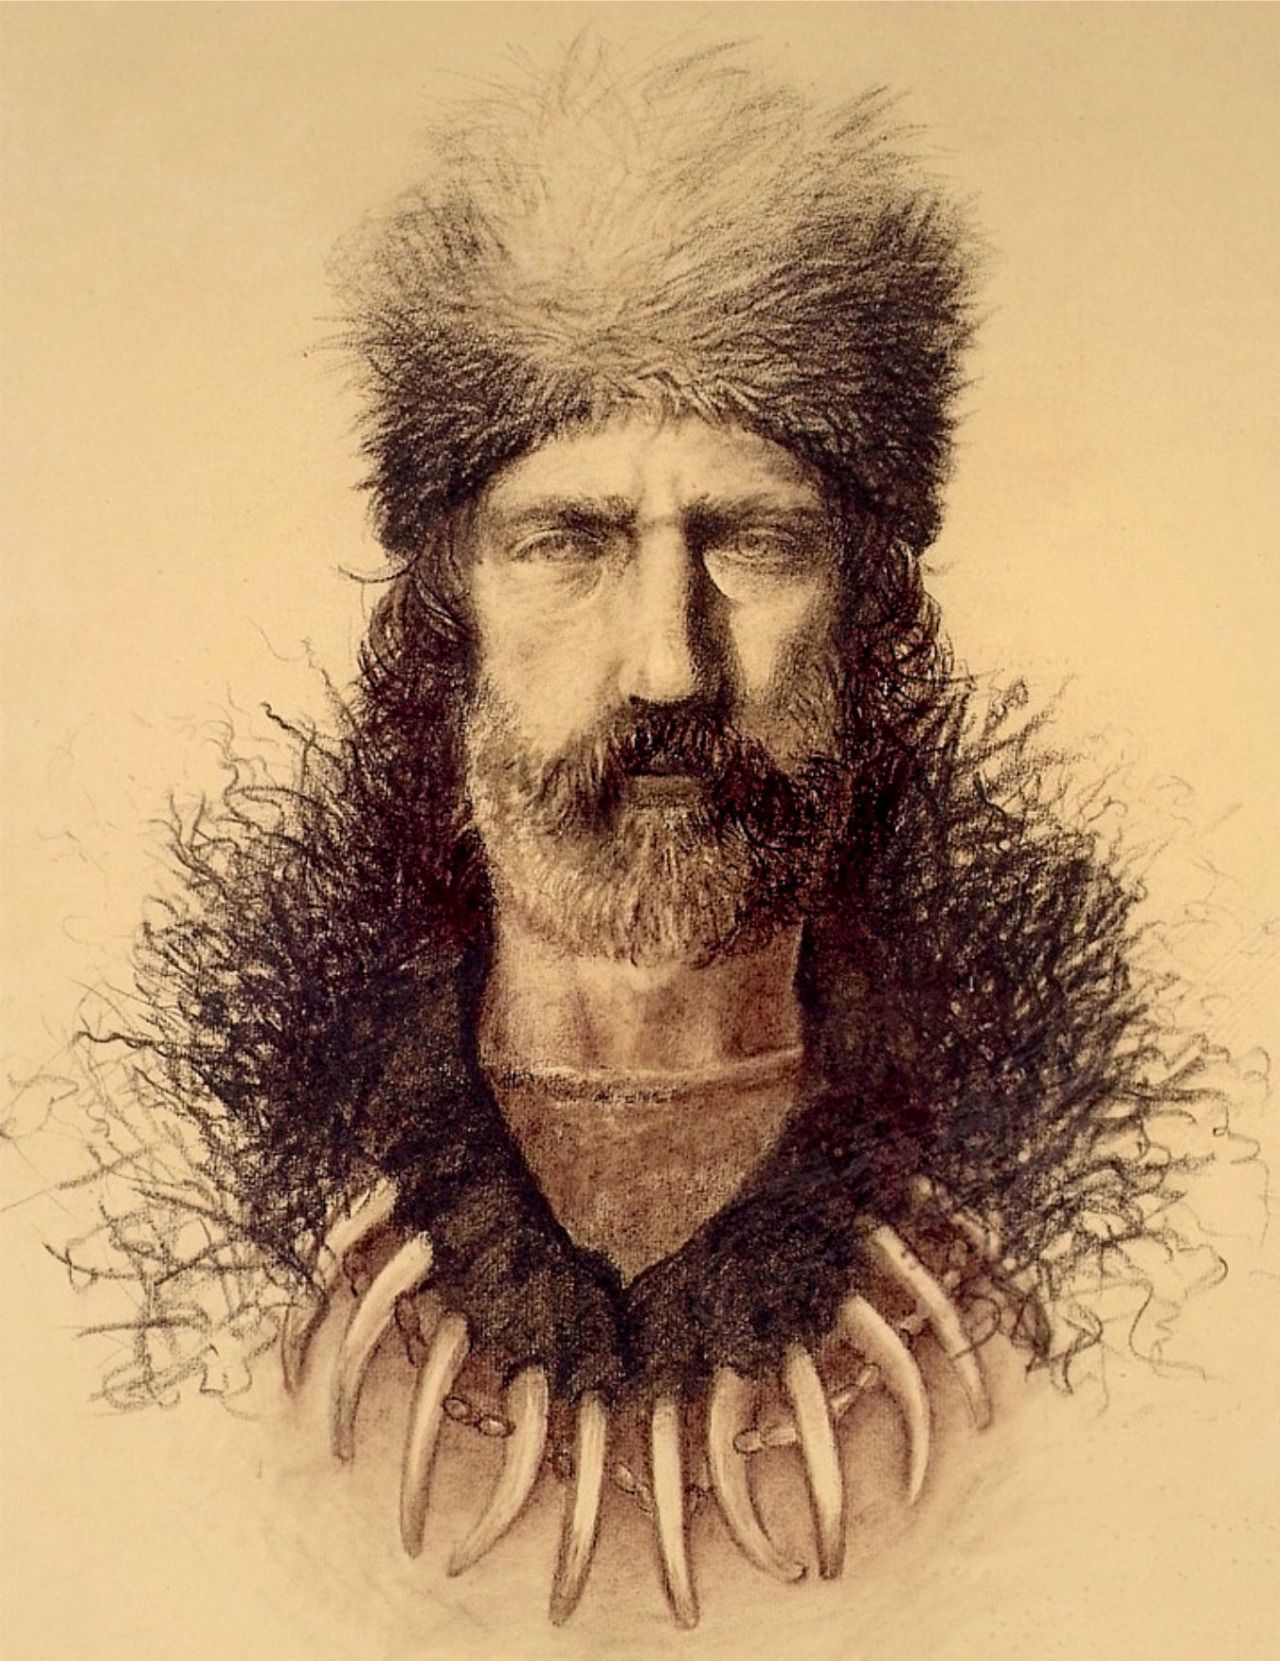 The Real Story Of A Survivor: What Happened To Hugh Glass